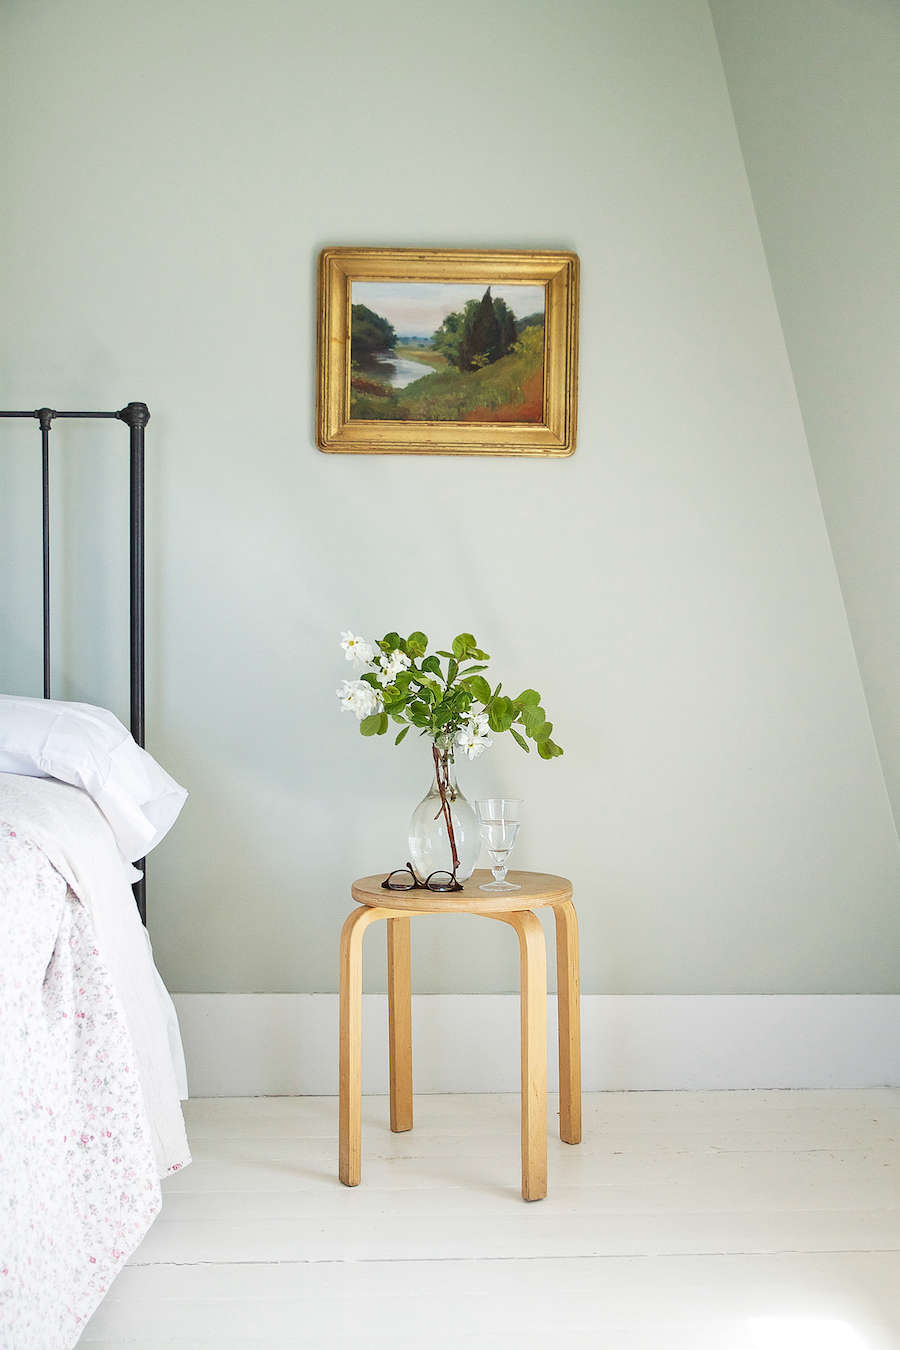 Cape Cod Summer Bedrooms Refreshed with Farrow & Ball Paint ...